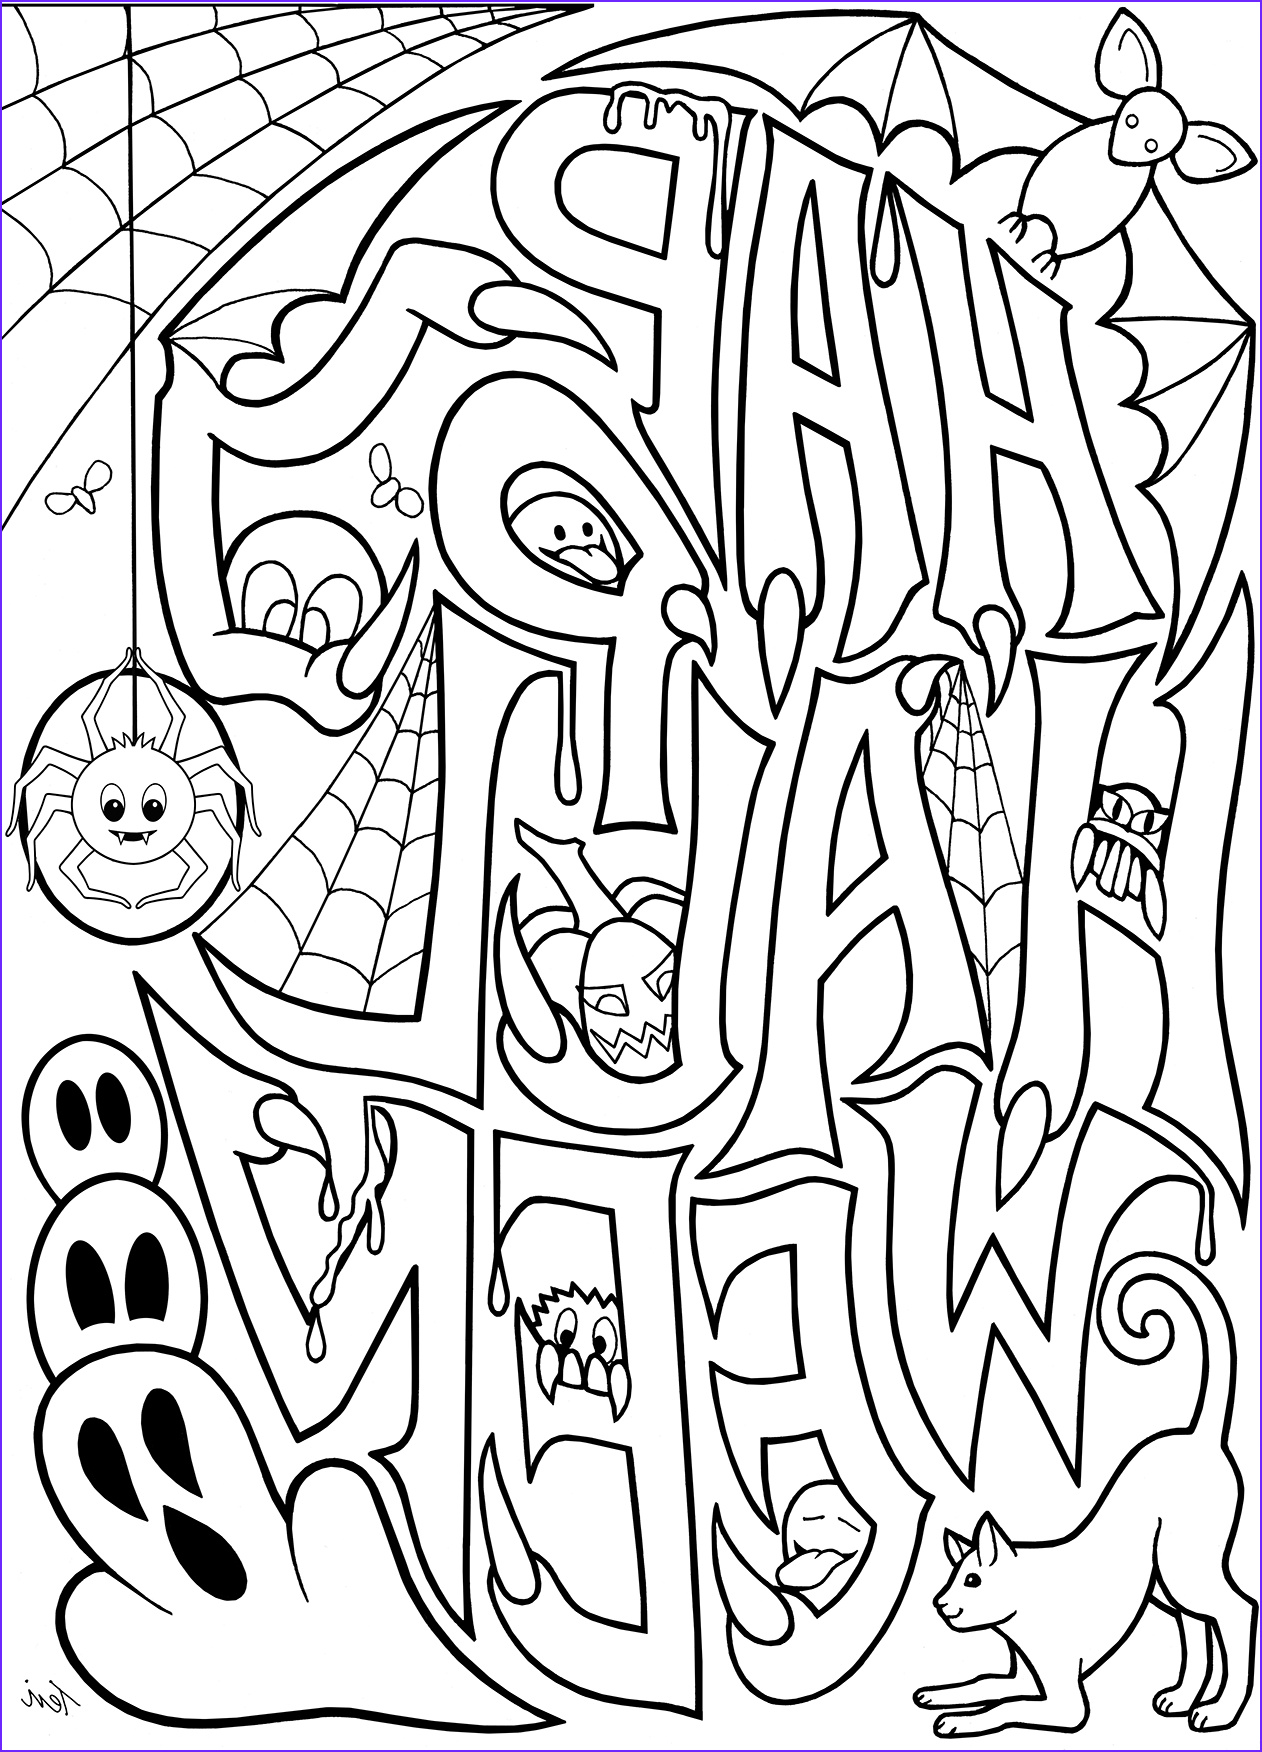 Halloween Coloring Pages to Print Awesome Images Free Adult Coloring Book Pages Happy Halloween by Blue